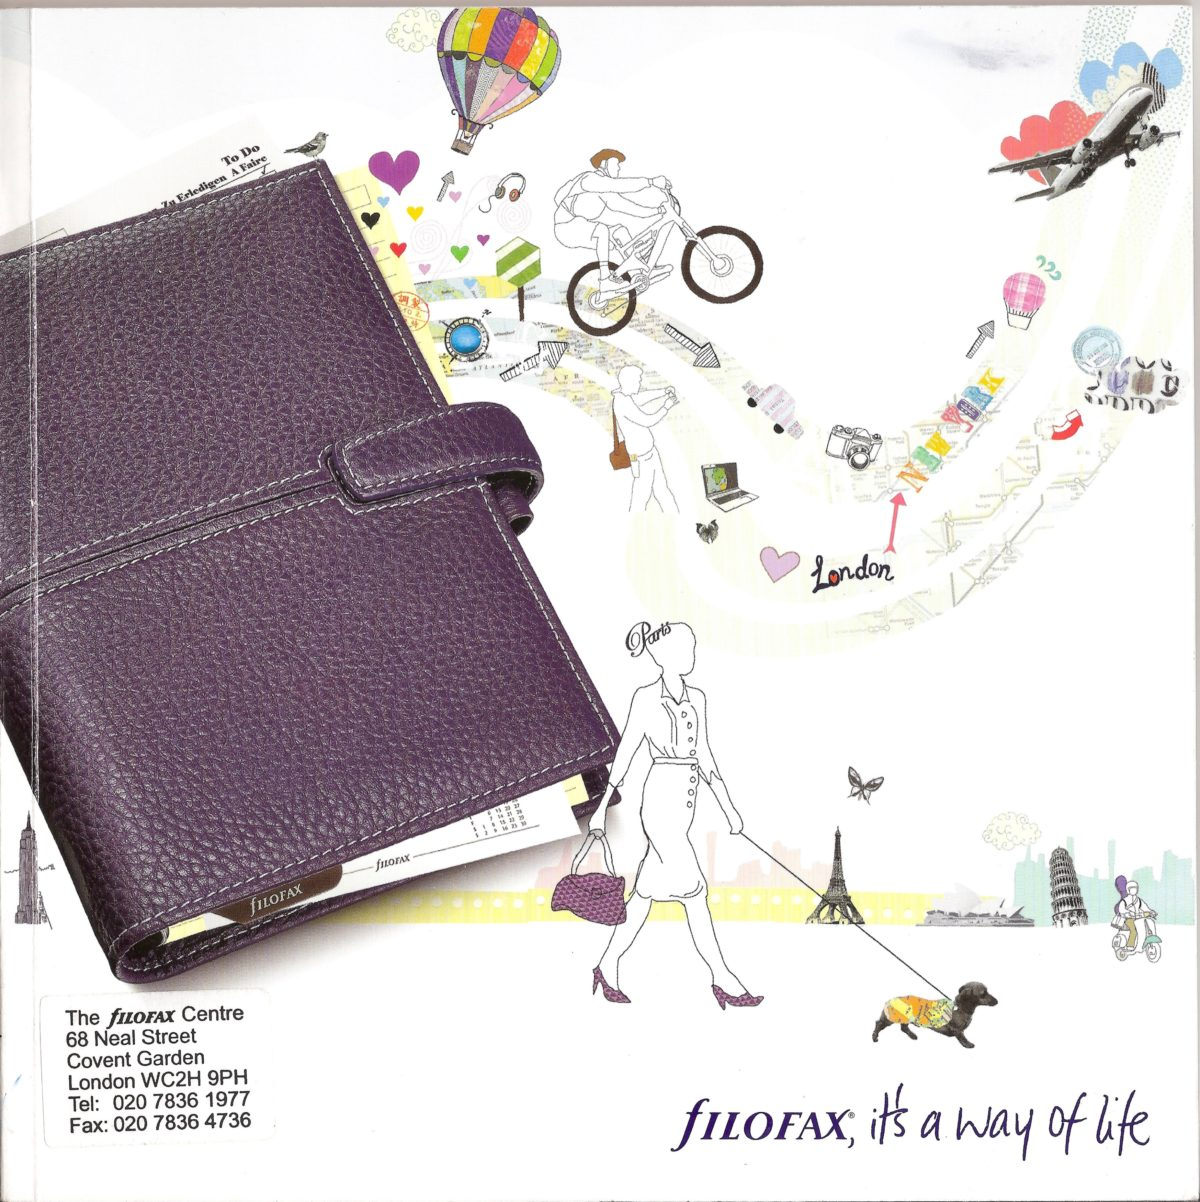 Filofax UK Full Catalogue 2010/11